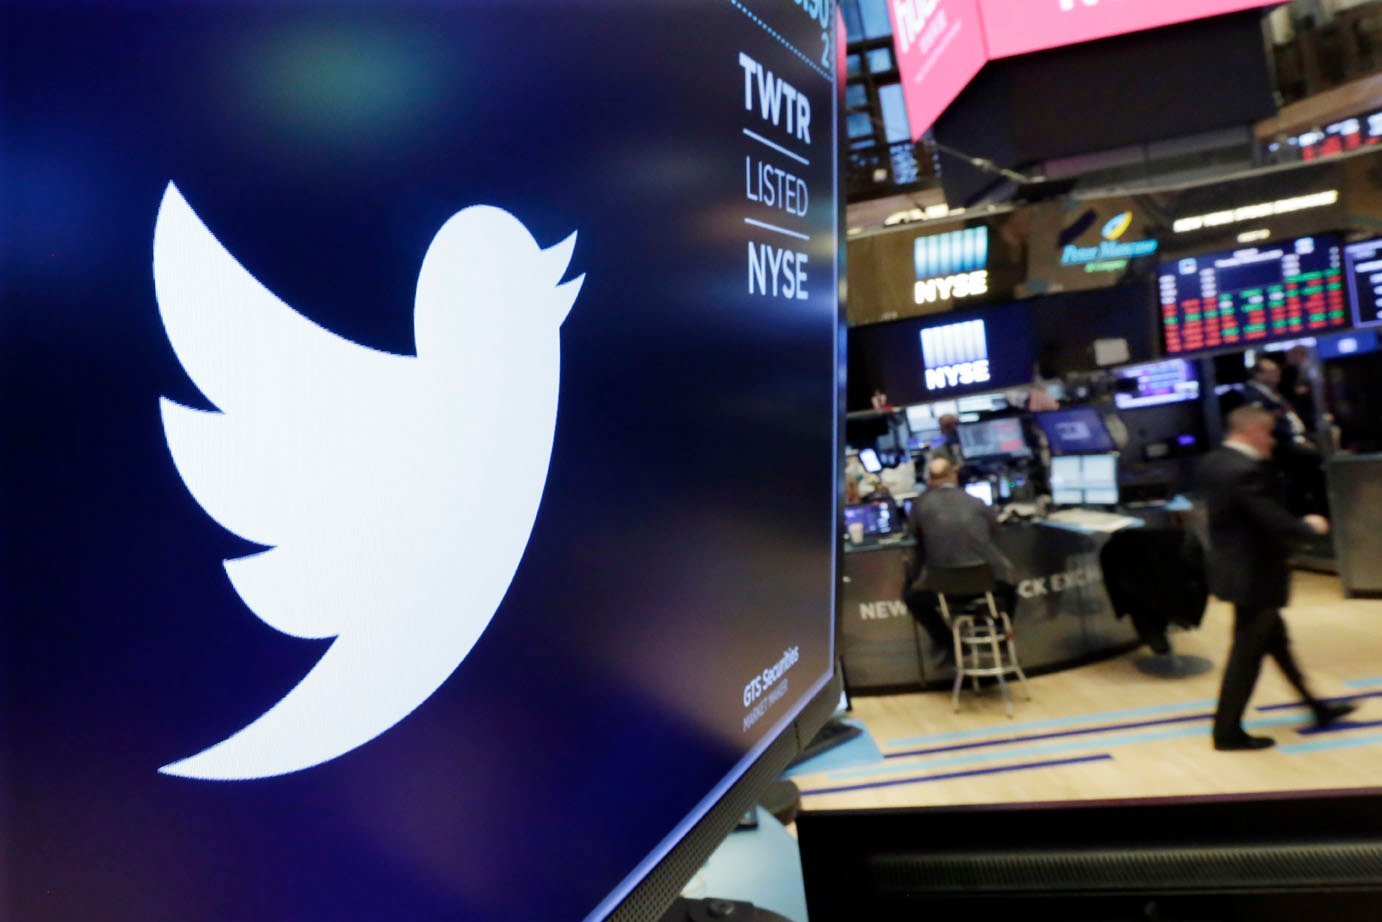 Twitter made money for the first time in its nearly 12-year history, a milestone that satisfied investors in the short term but might not resolve the company's broader problems any time soon. (Source: AP Photos)